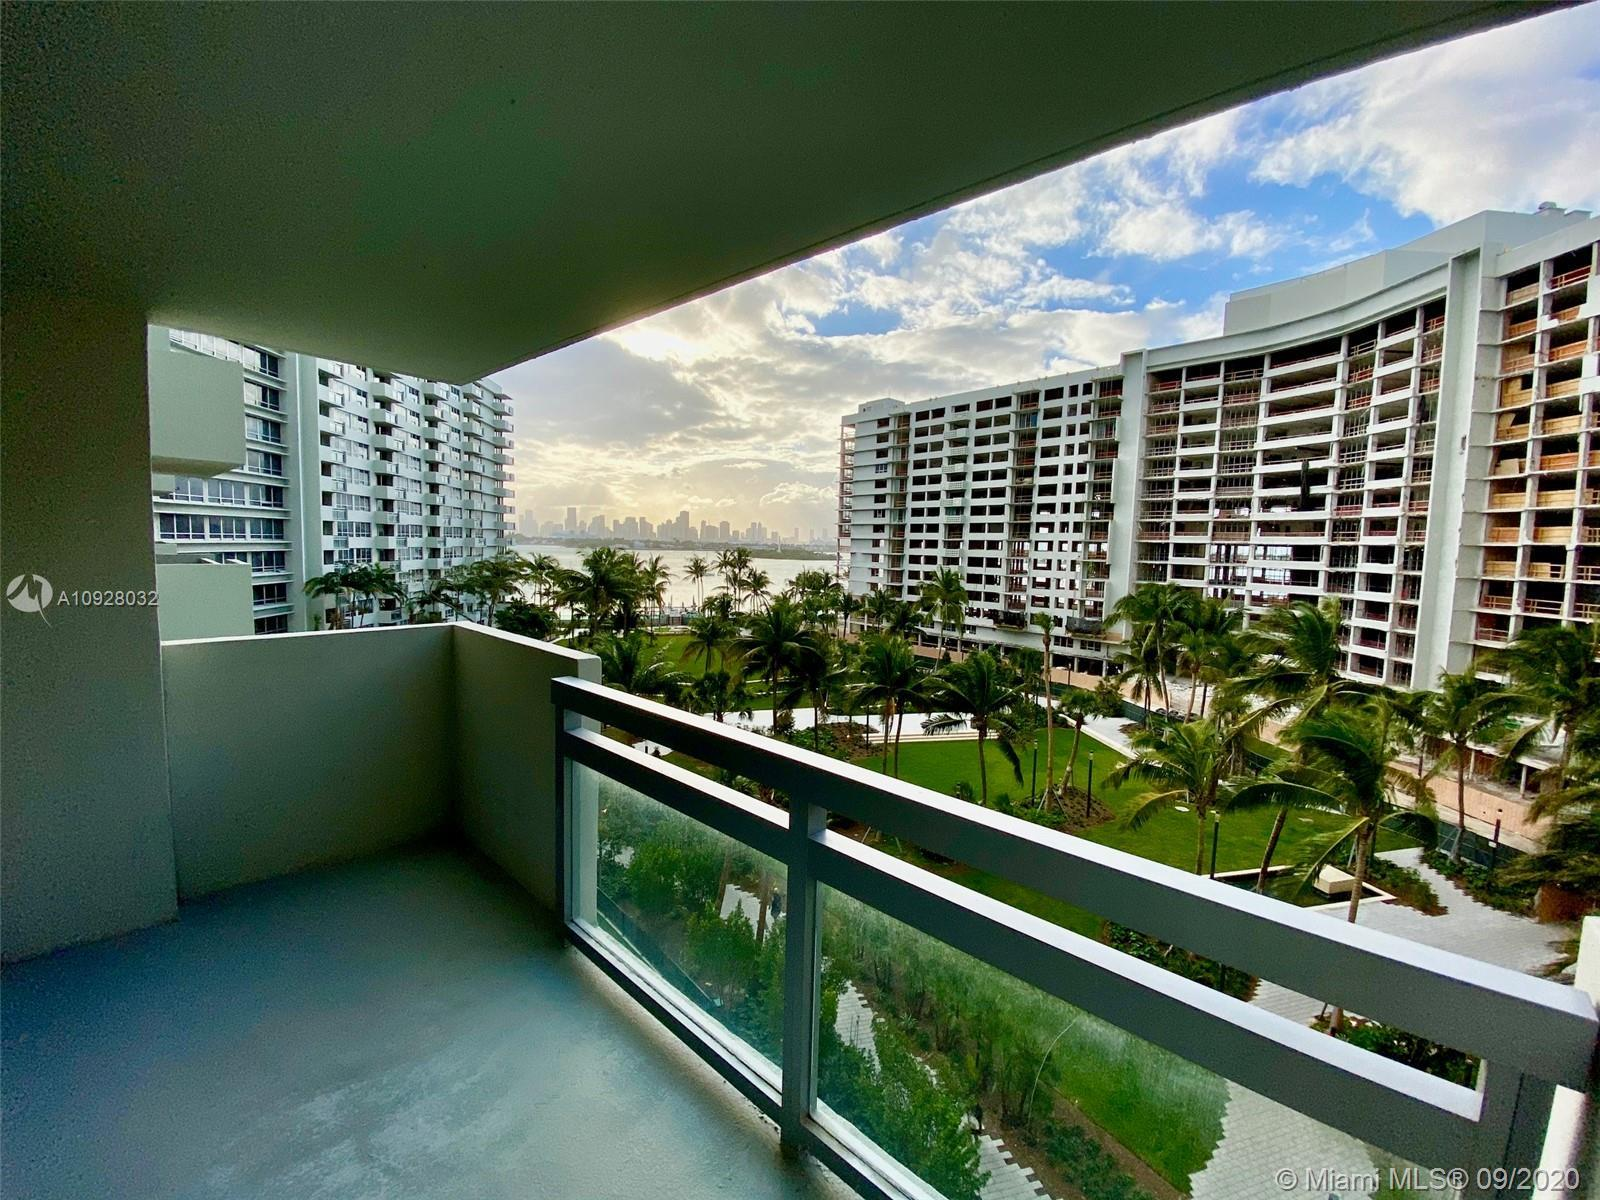 Remodeled 1bed apartment overlooking a renovated park to the Bay and Miami skyline. Open kitchen wit